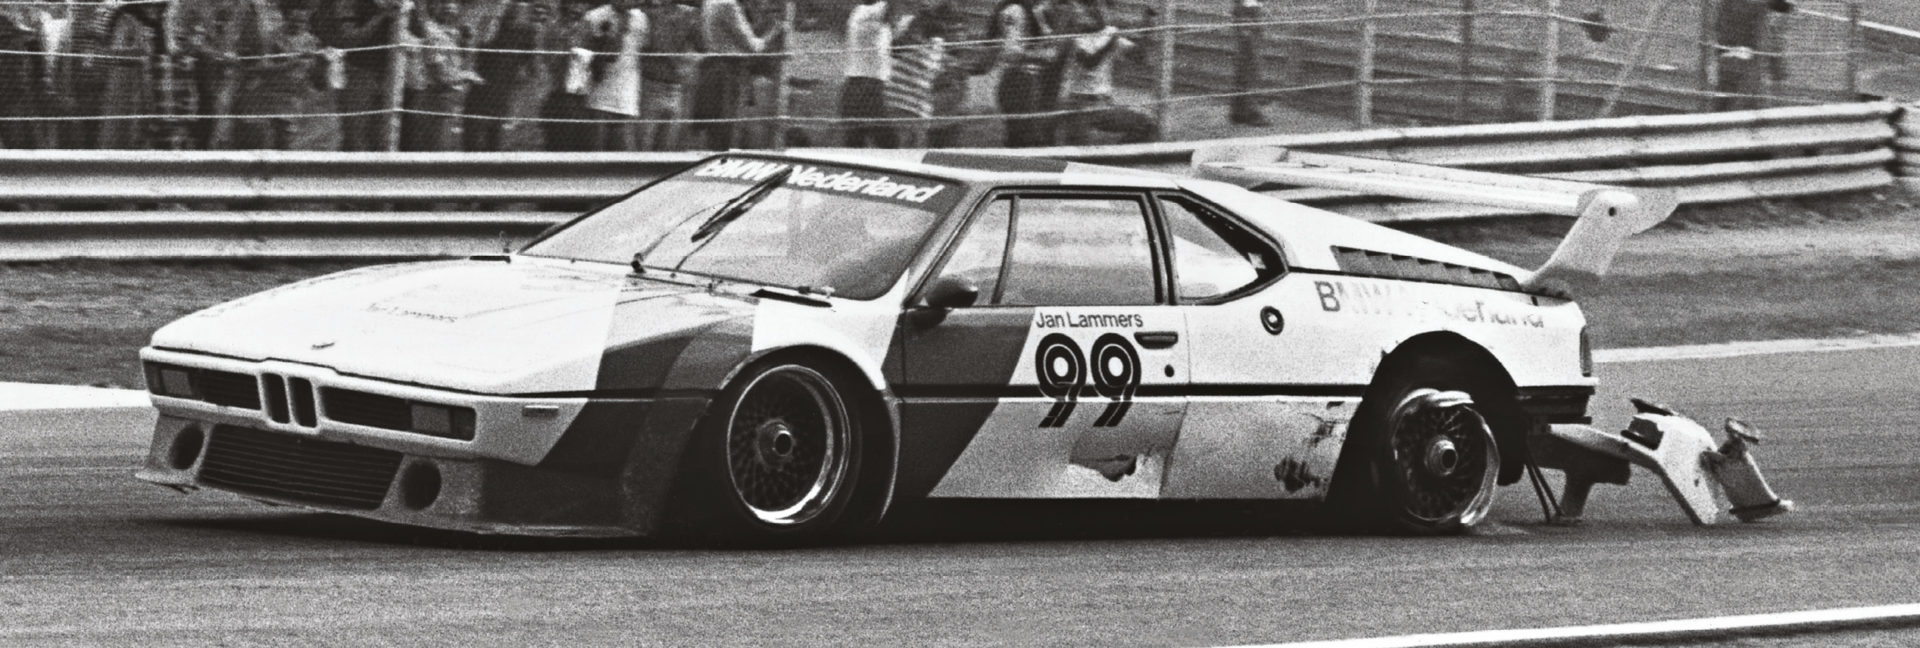 He won the opening Procar event of 1980 at Donington, but hit trouble at Imola. He was fourth in the points that season